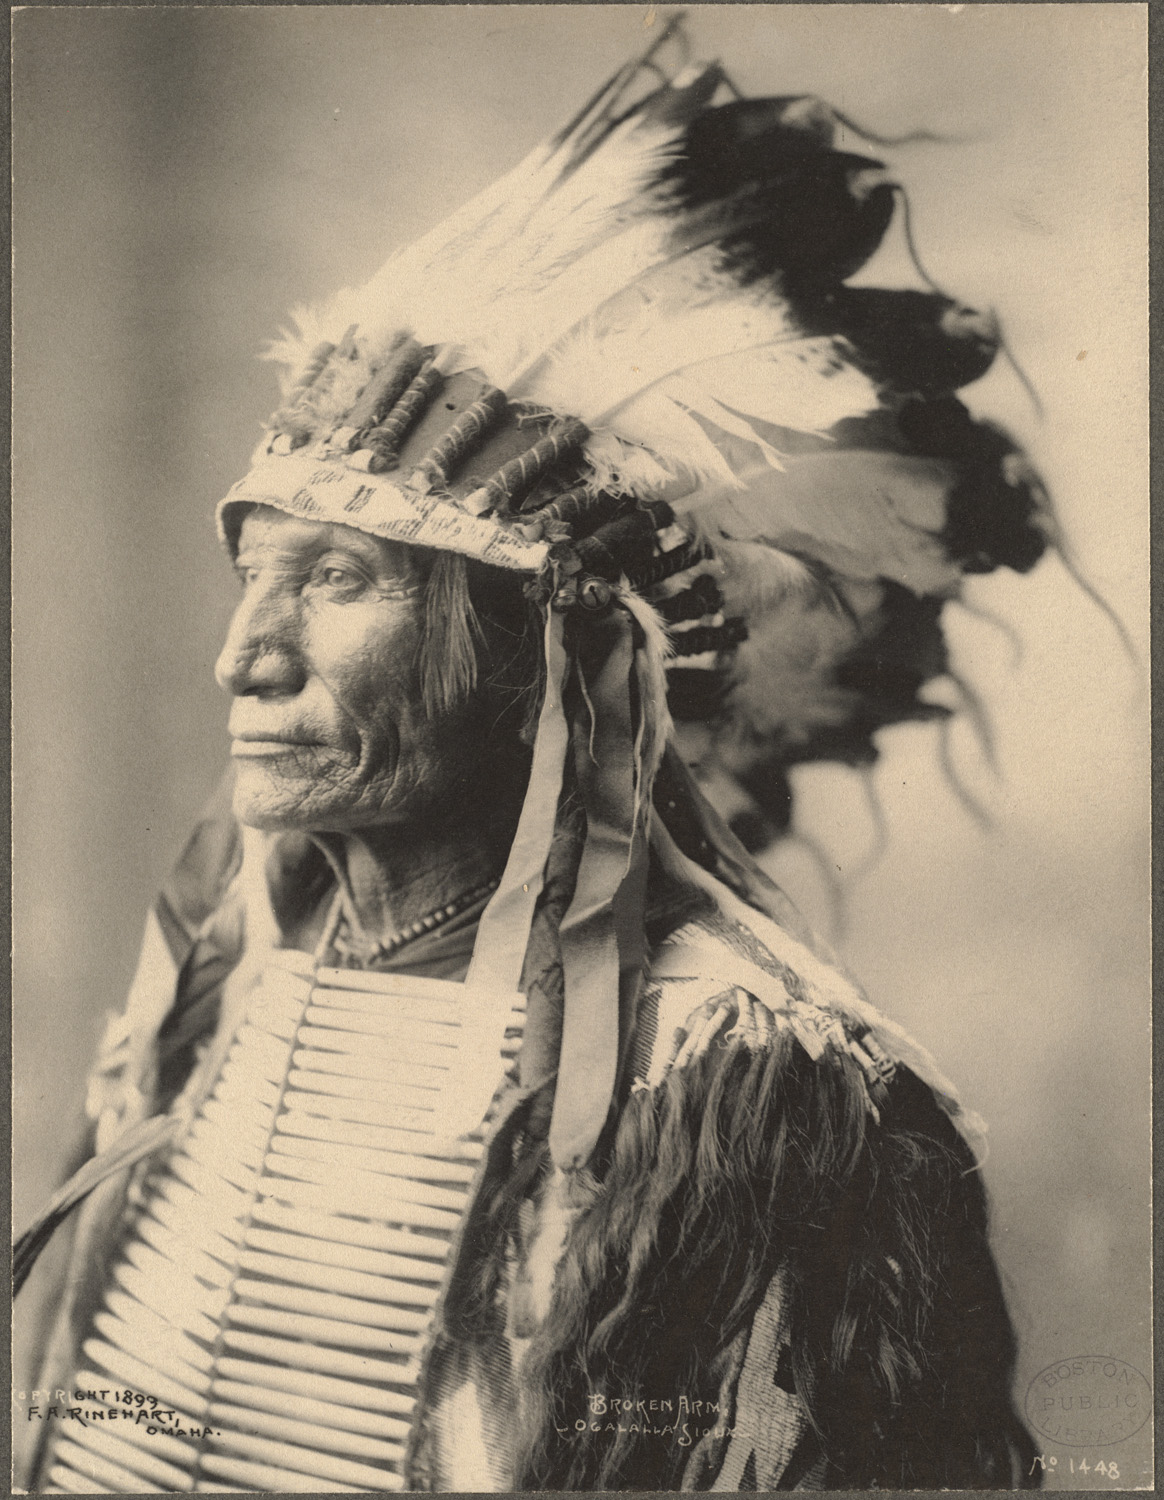 lakota culture during the 19th century The cultural assimilation policies enforced by the us government beginning in  the 19th century forced lakota students to give up their native.